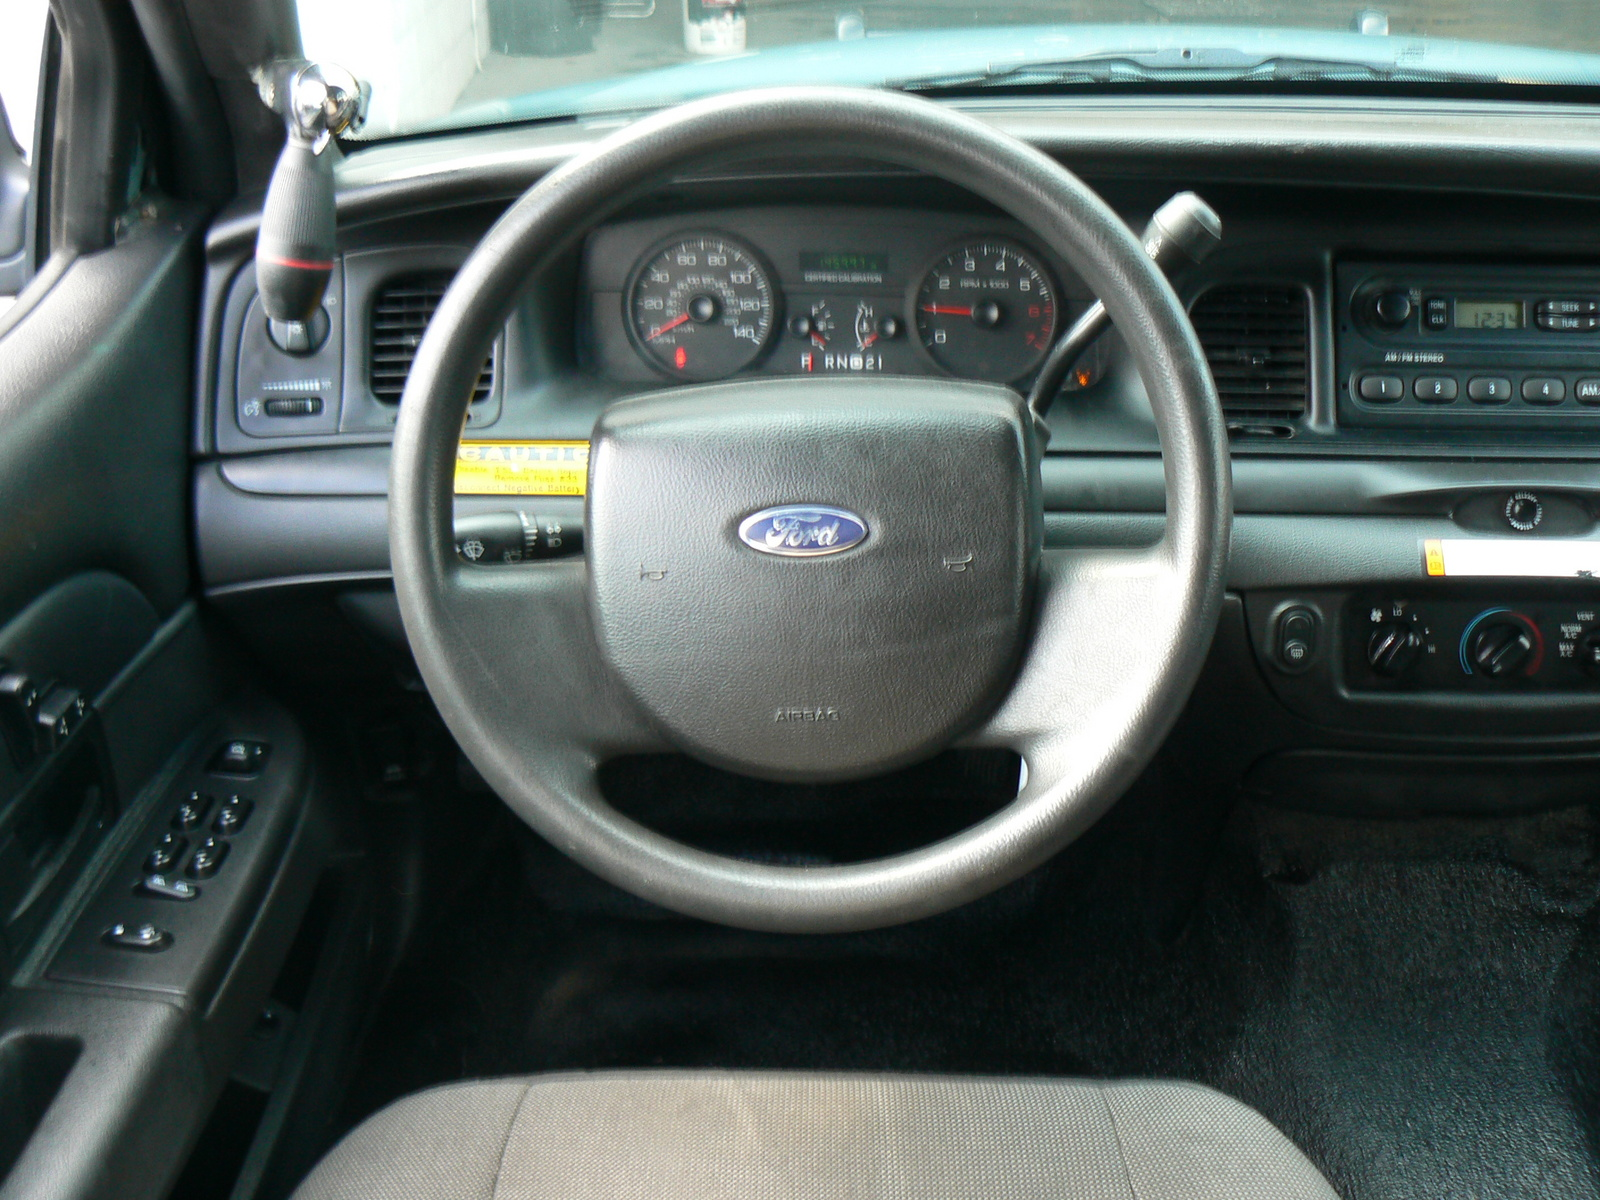 FORD CROWN VICTORIA interior